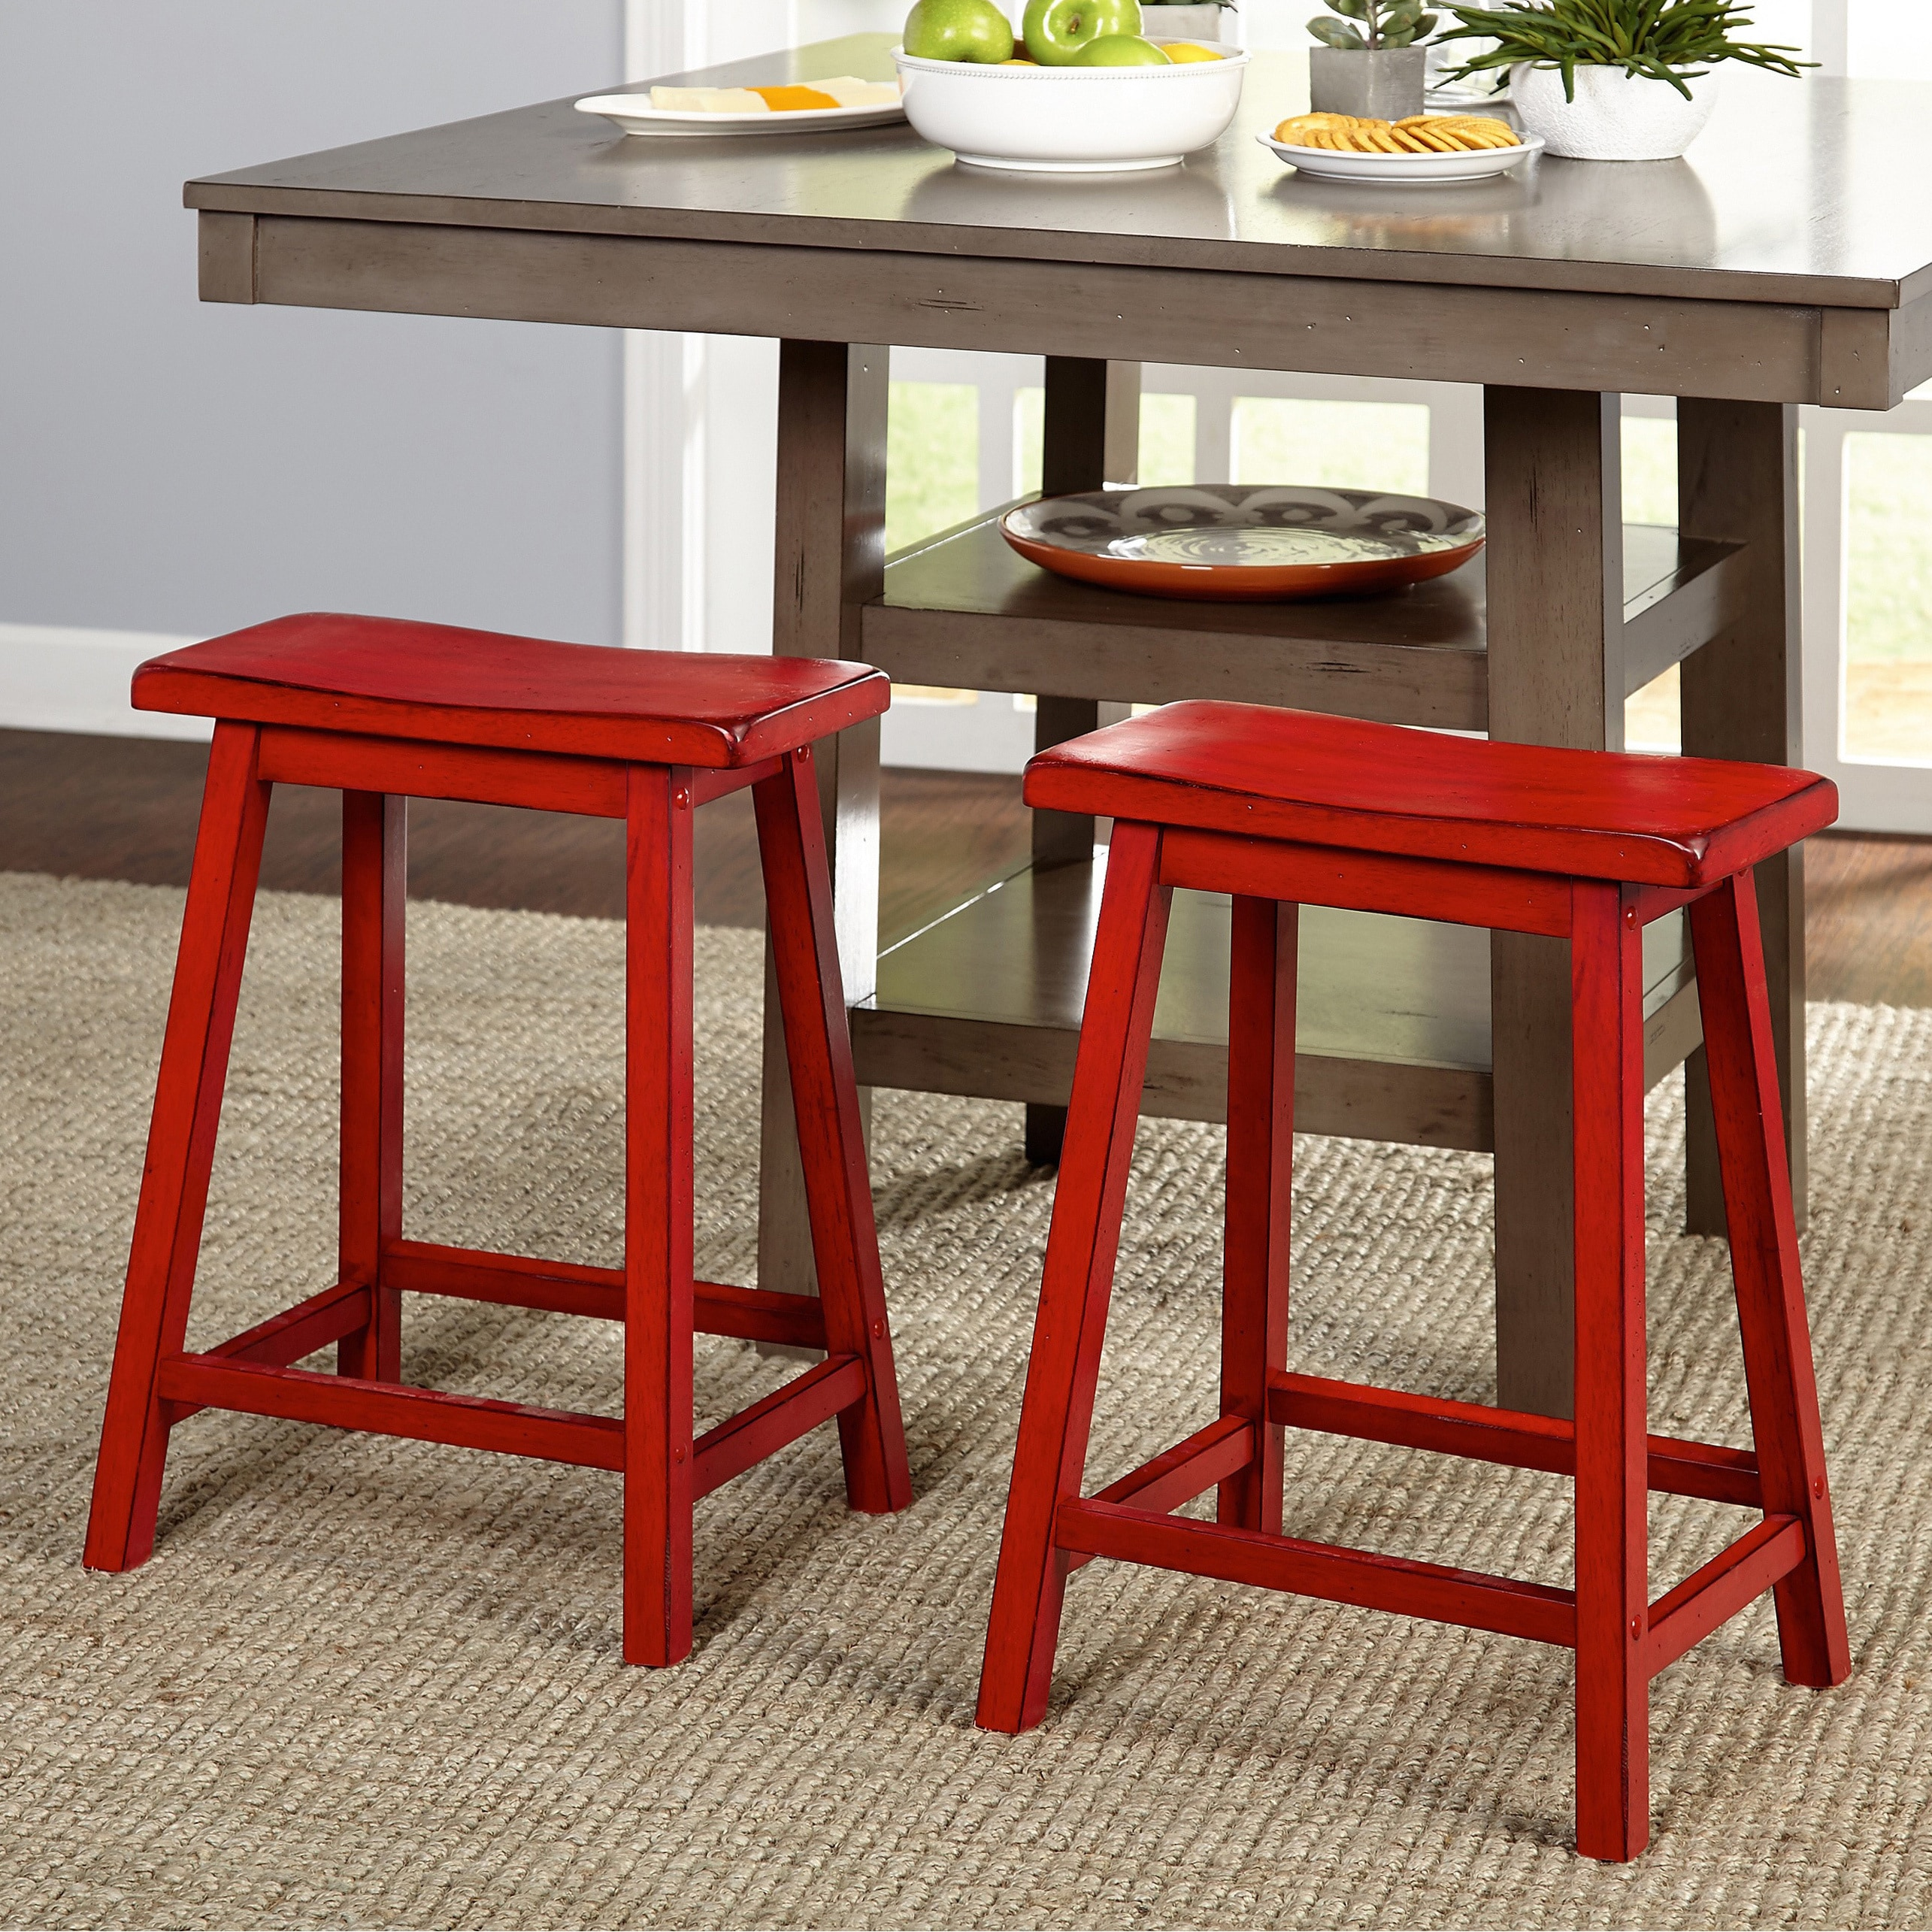 Fine Simple Living Marney Rubberwood 24 Inch Counter Height Saddle Stools Set Of 2 Pdpeps Interior Chair Design Pdpepsorg